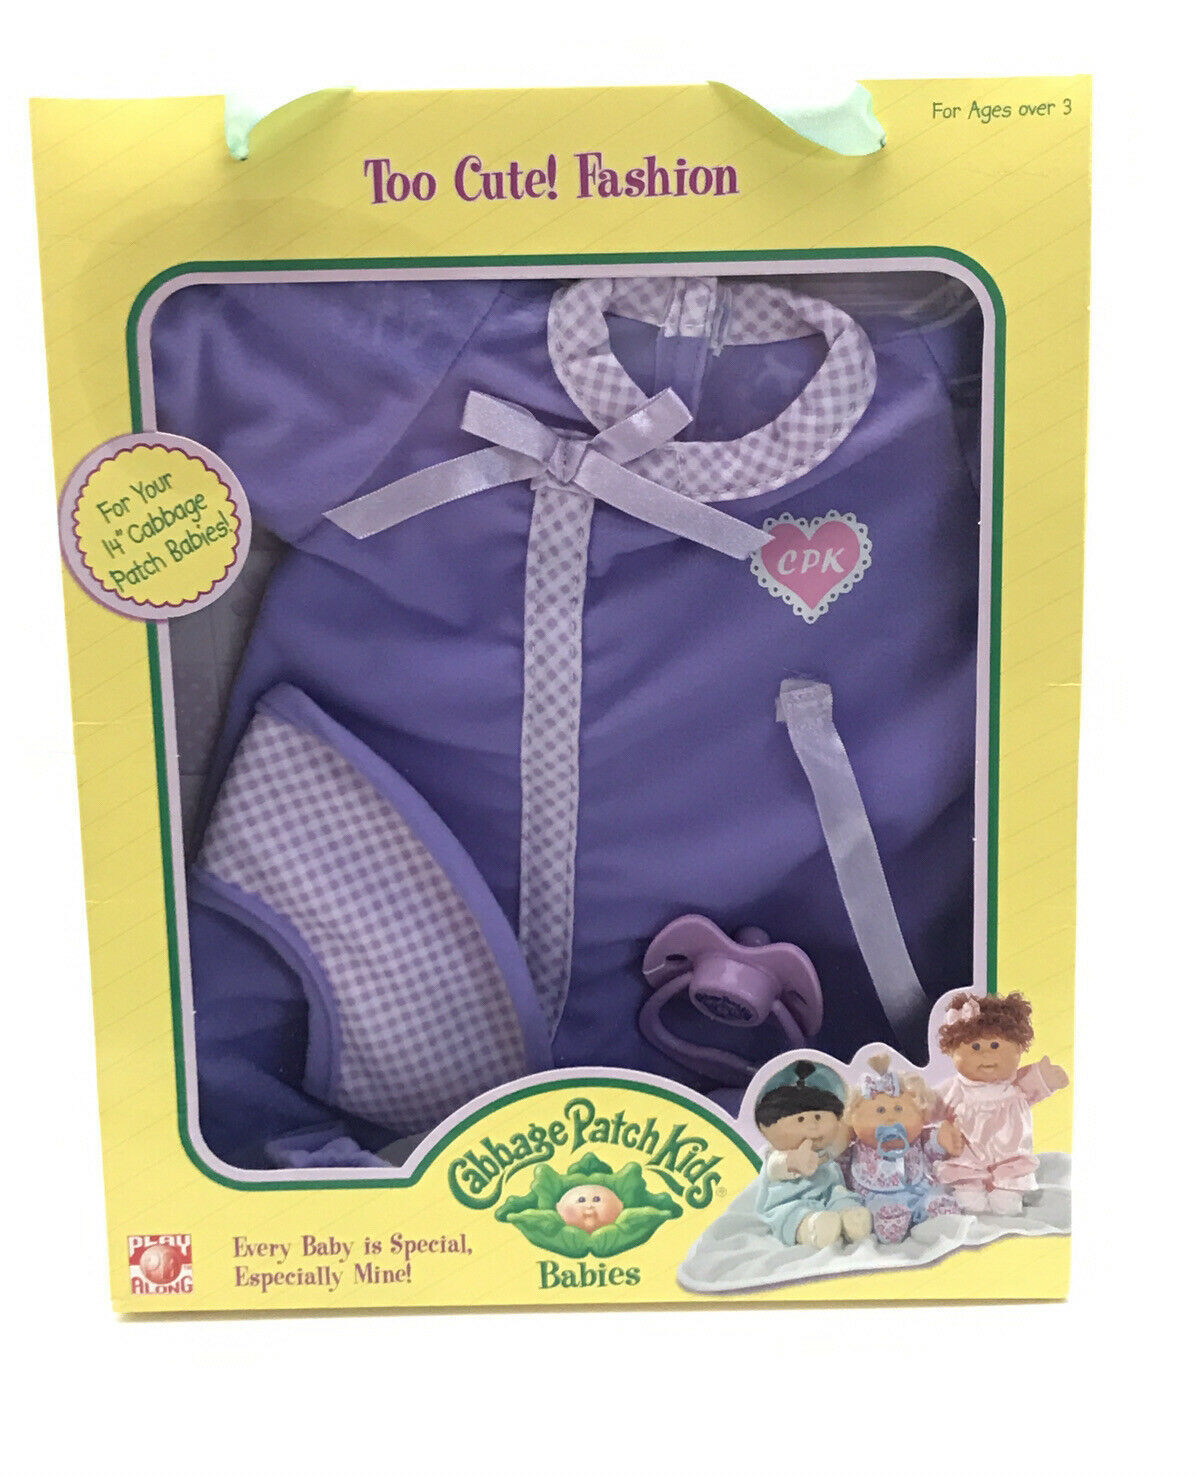 Cabbage Patch Kids Babies Too Cute! Fashion Doll Clothes Purple Outfit Bib CPK - $31.68